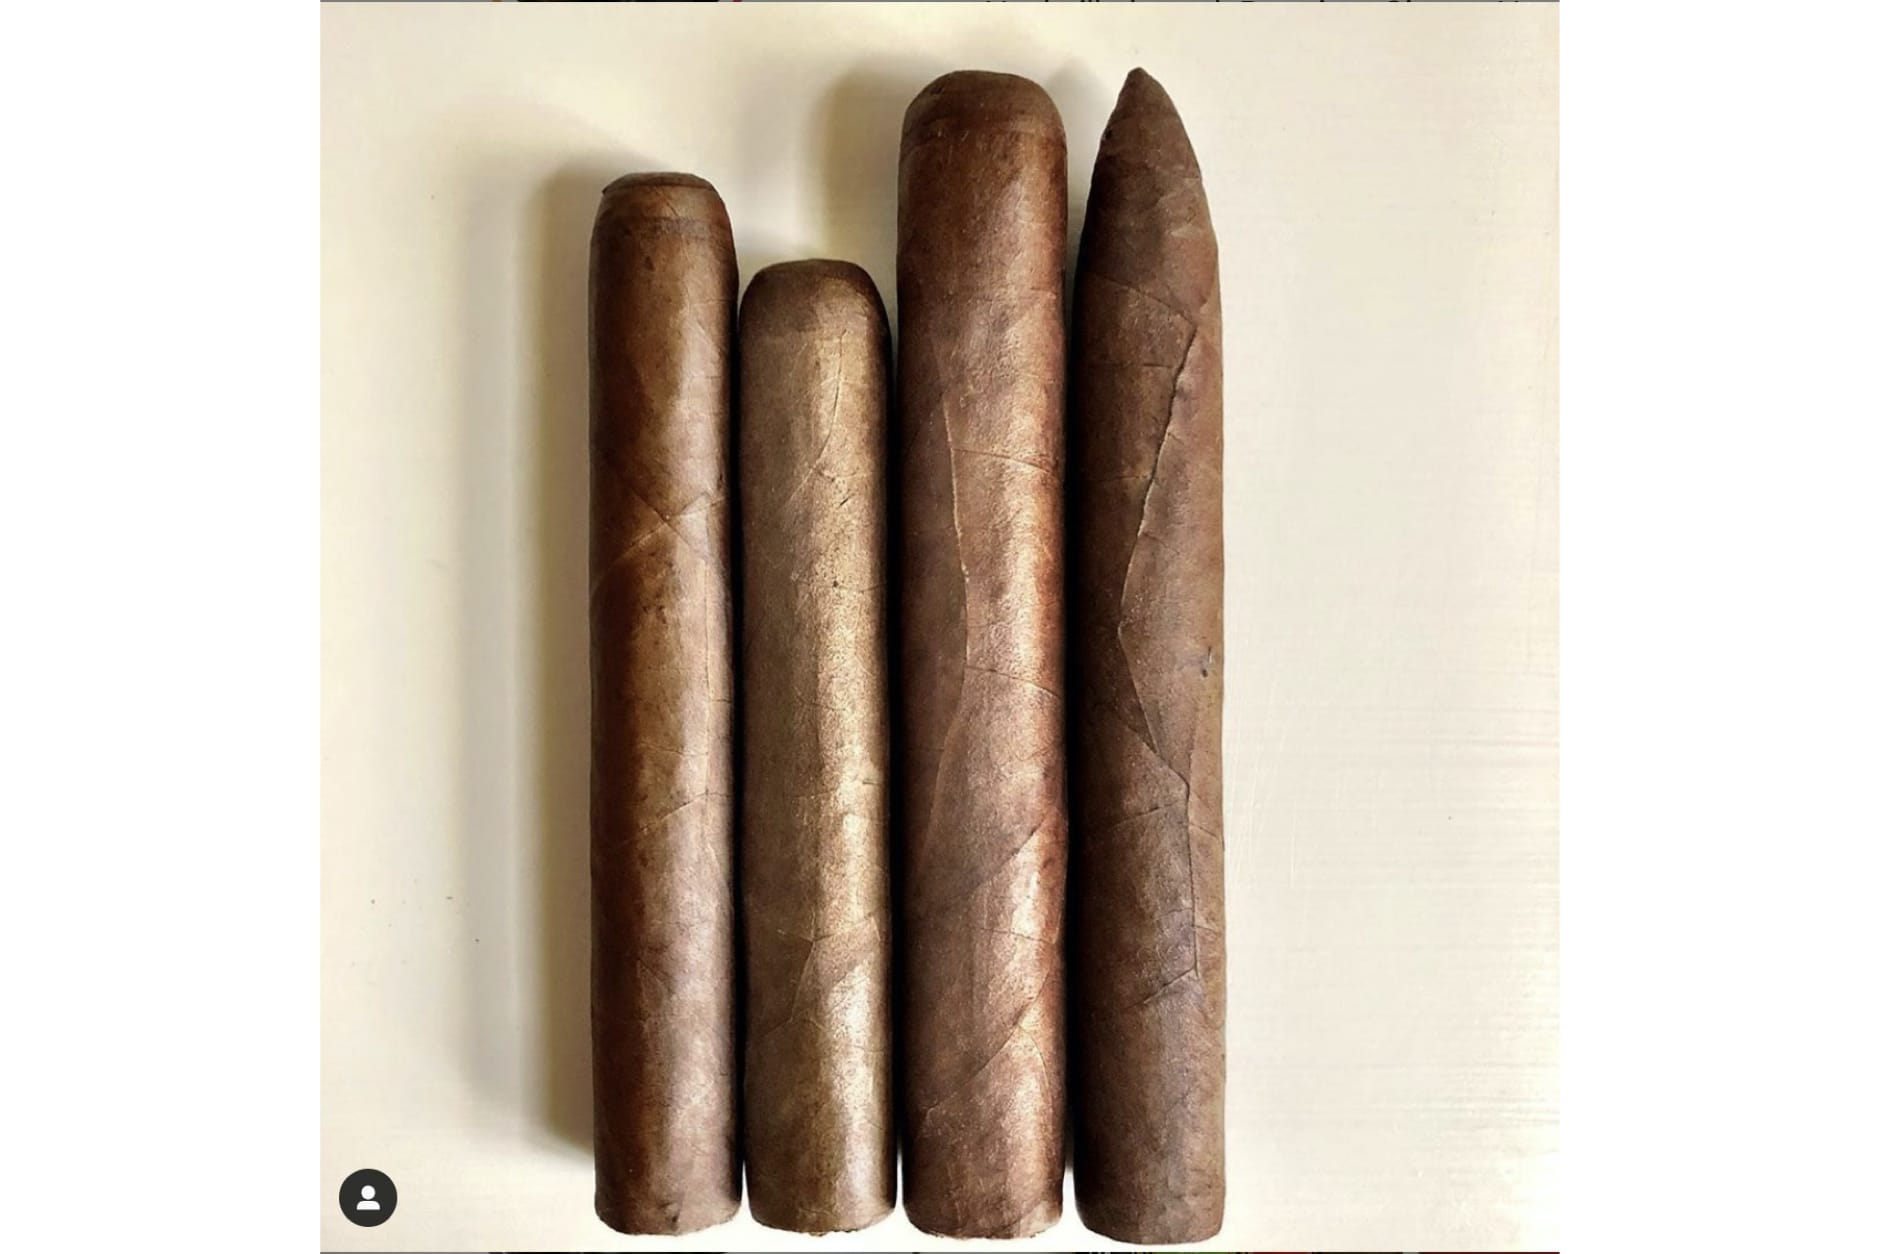 Crowned Heads Teases Las Calaveras 2020 Featured Image